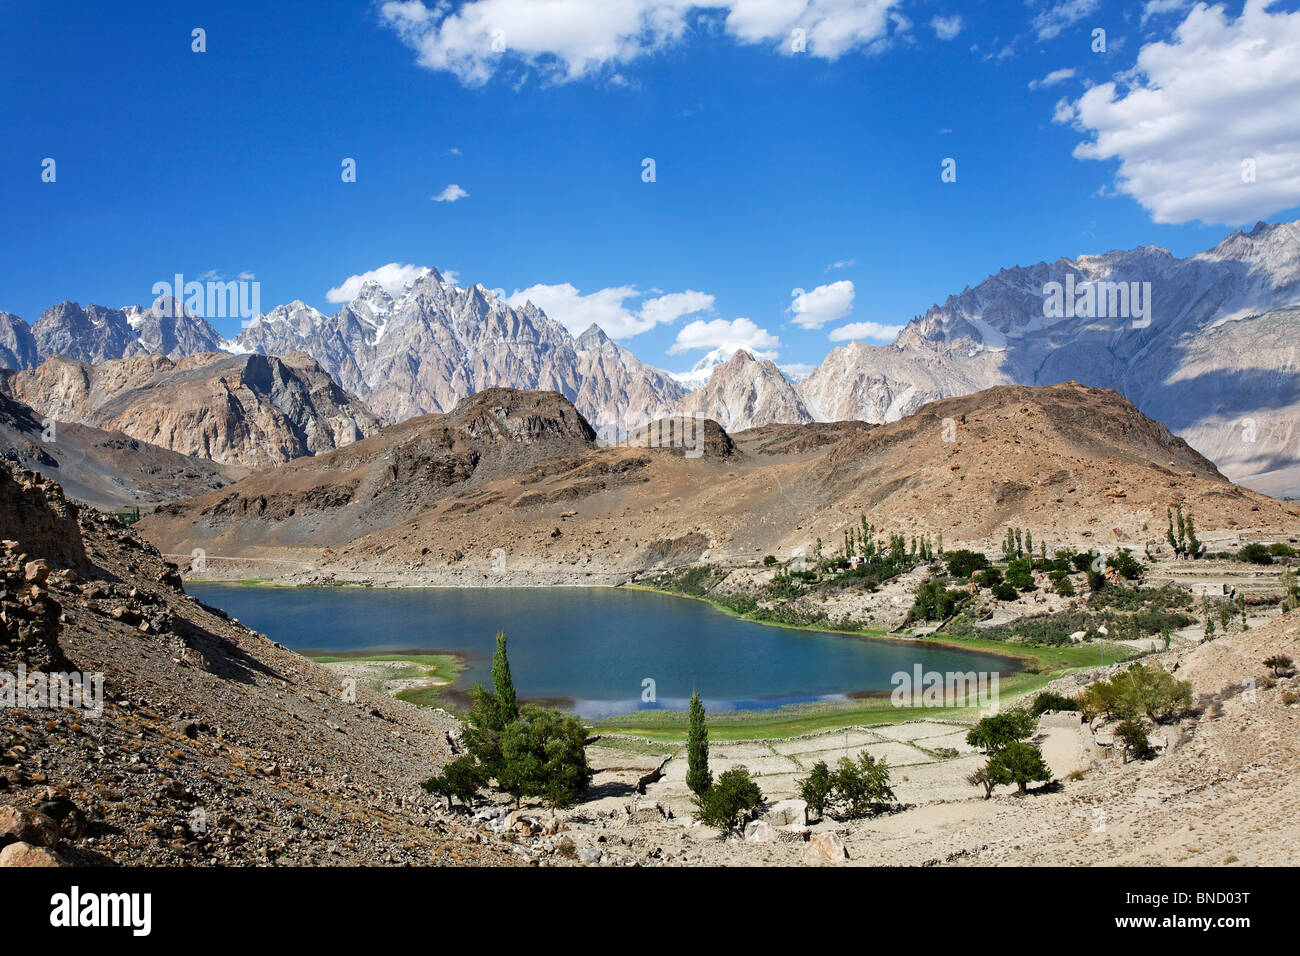 Borith Lake and mountains, Passu, Hunza Valley, Karakorum, Pakistan - Stock Image